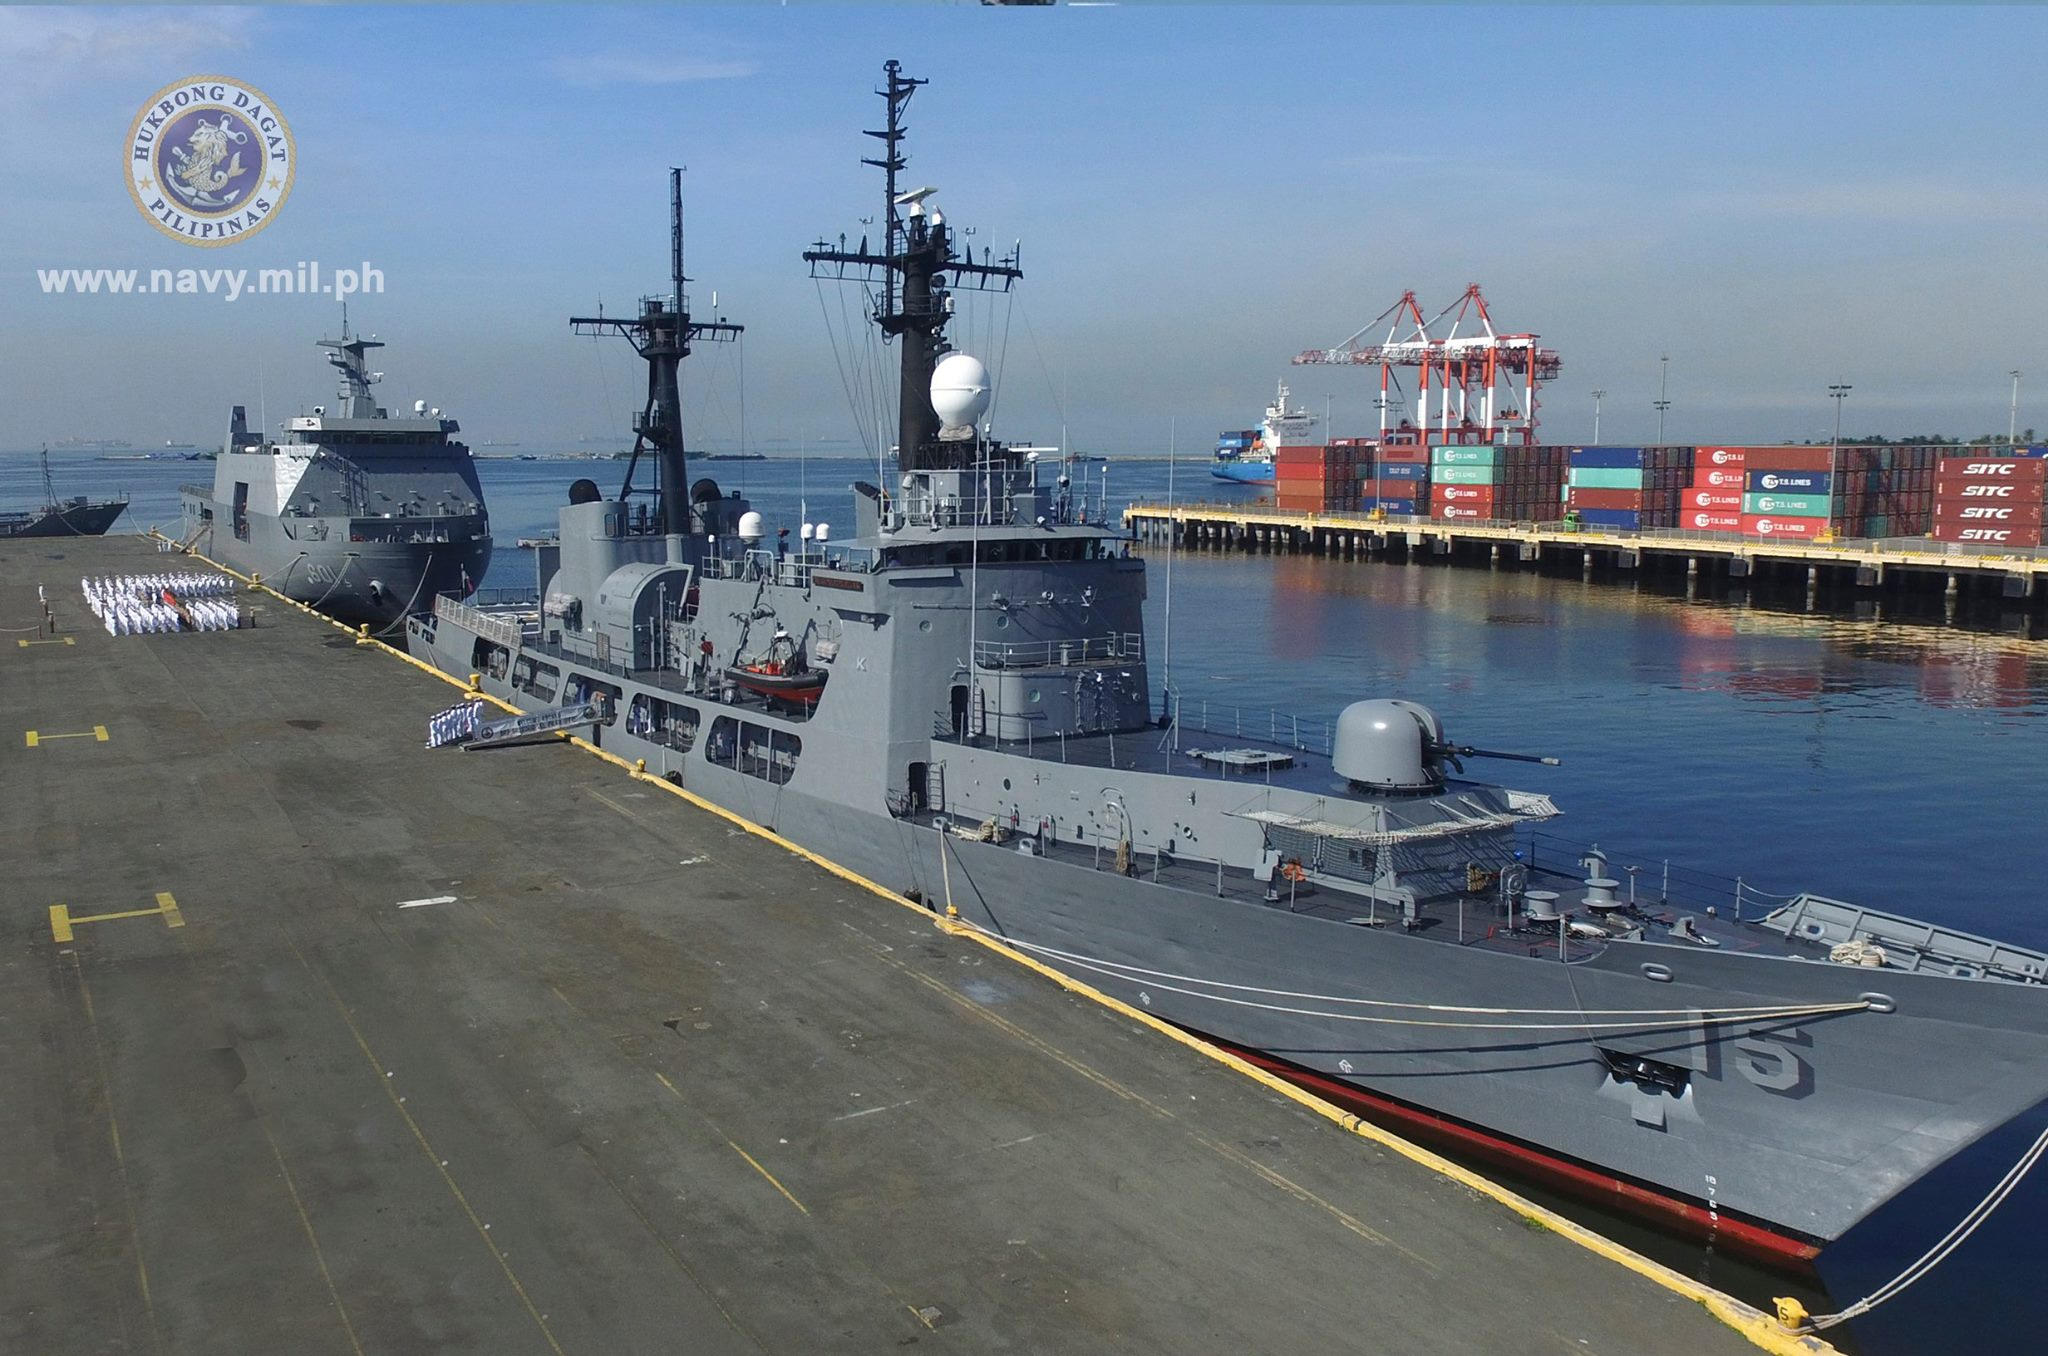 Philippines Sends Largest Warship Frigate For Asean Wargames